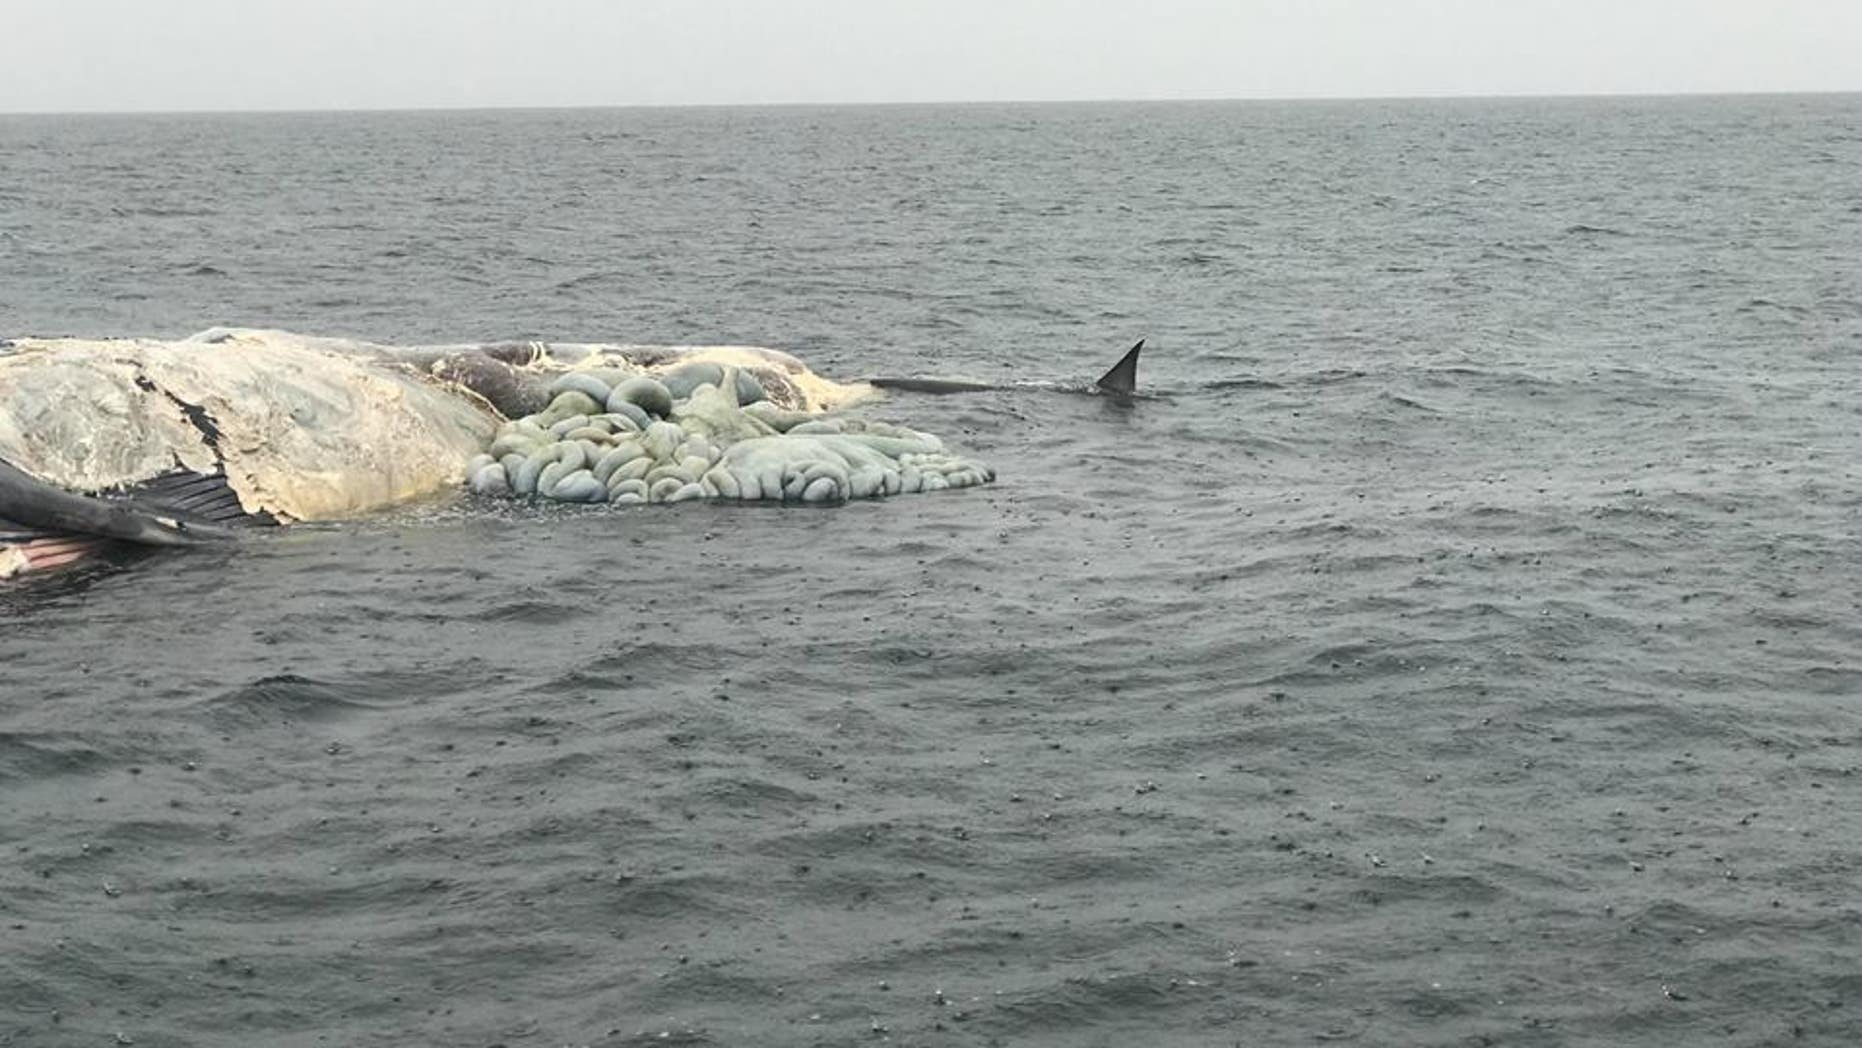 While not definitive, Carter said the carcass might have been that of a fin or sei whale.